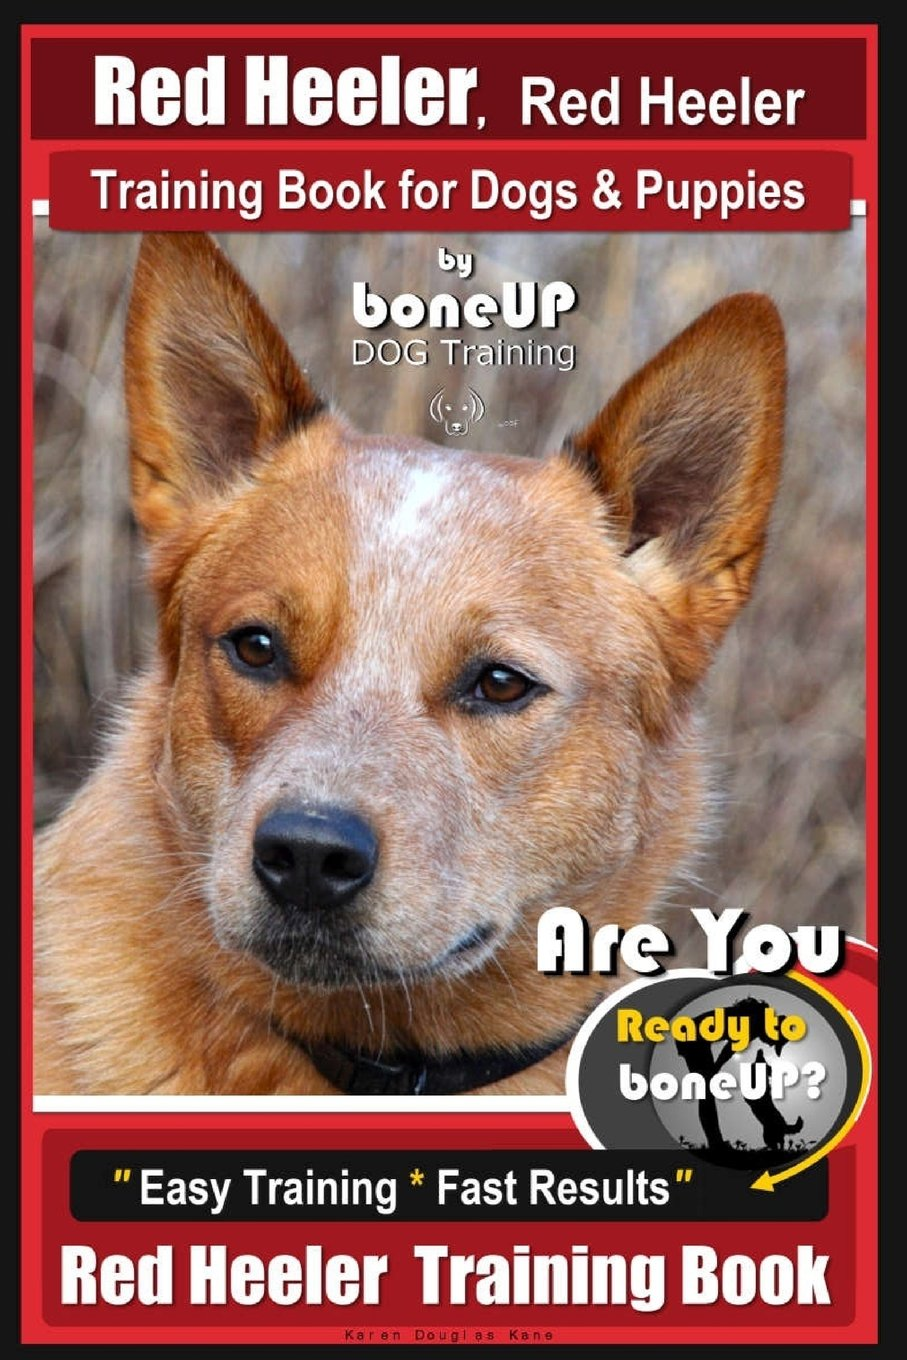 Red Heeler Red Heeler Training Book For Dogs Puppies By Boneup